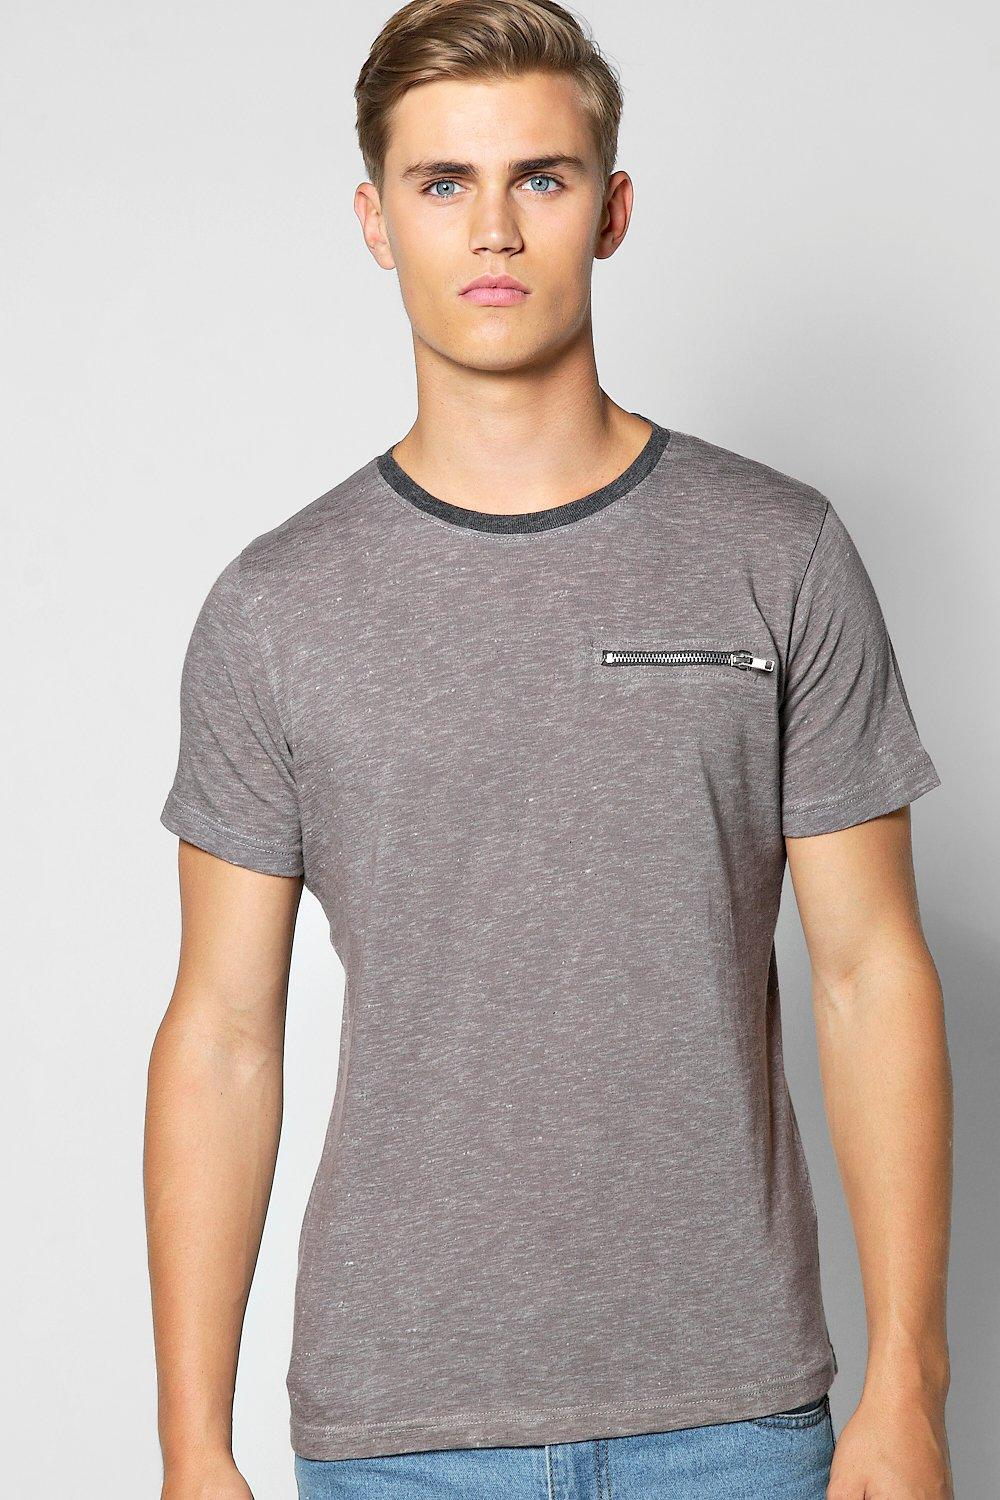 Space T Shirt With Zip Pocket